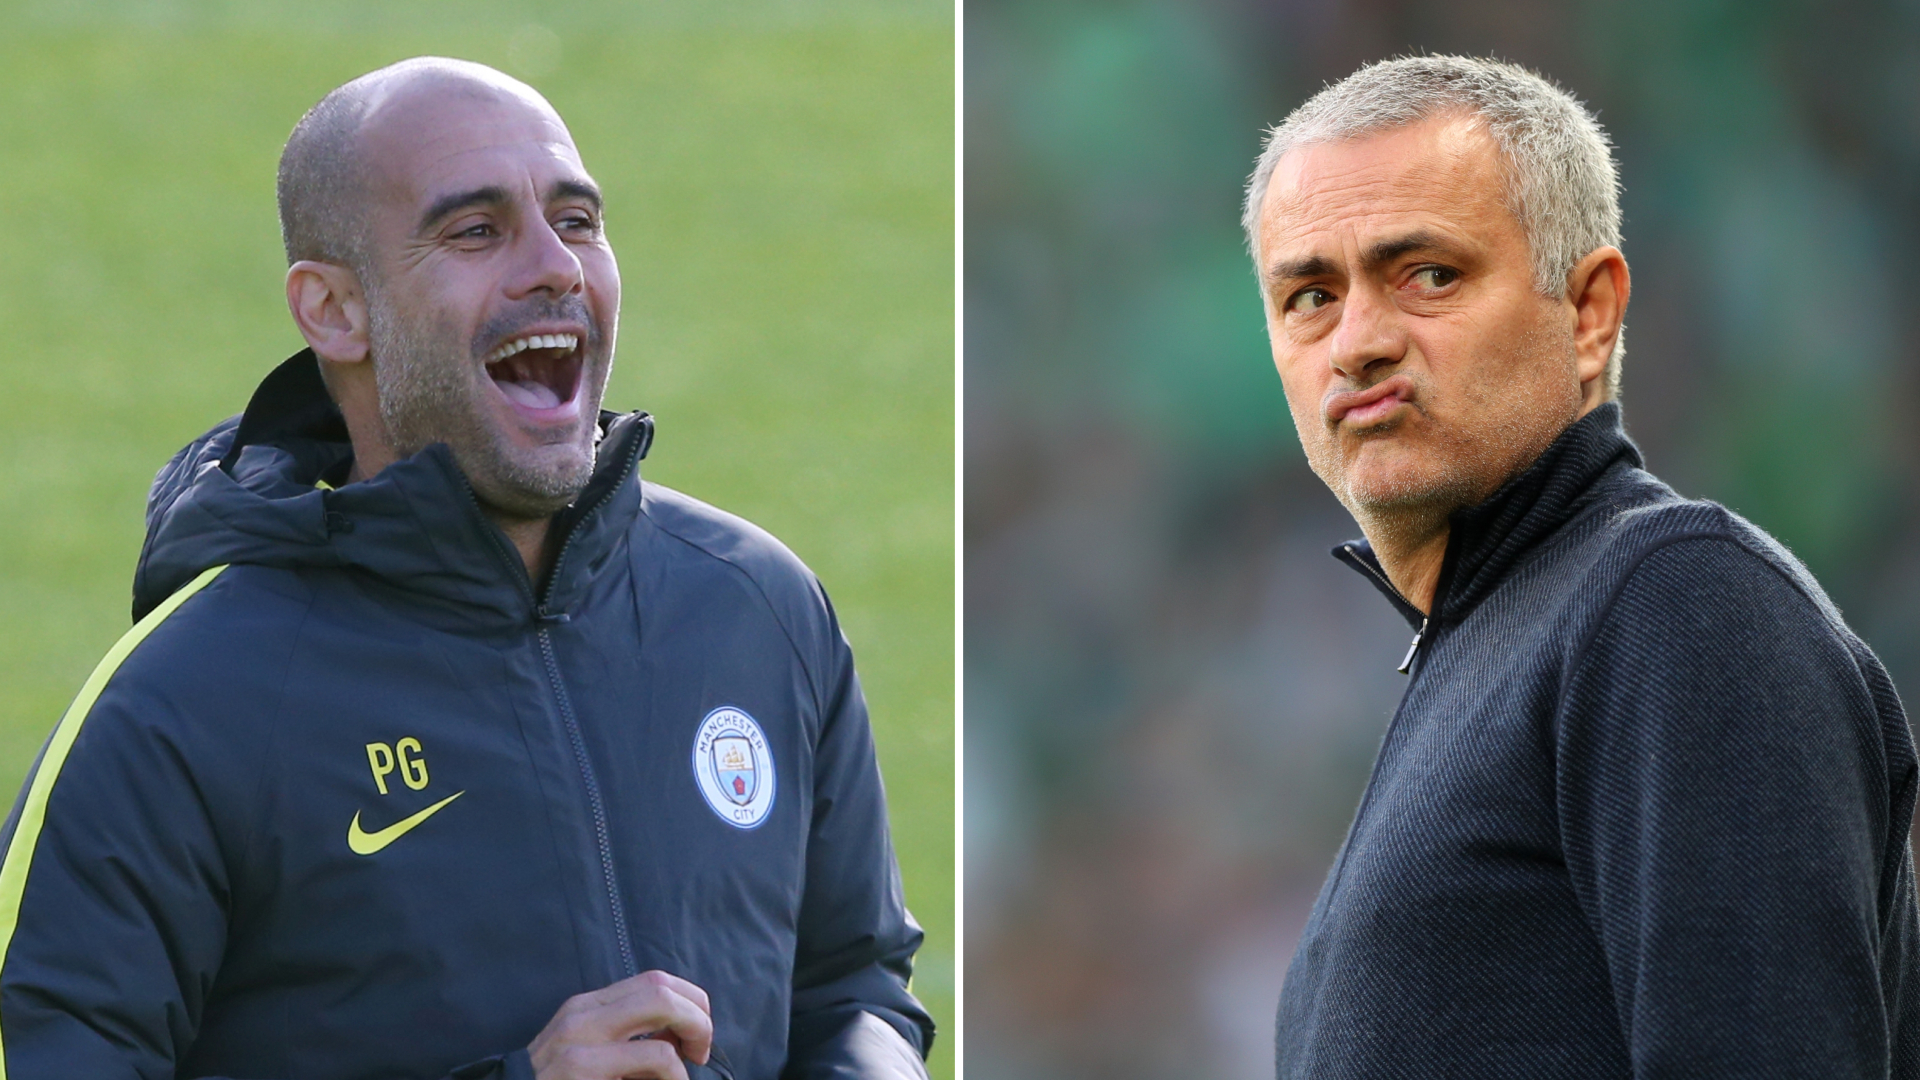 'Maybe Mourinho is a doctor!' – Guardiola hits back at Tottenham coach's Sterling claims